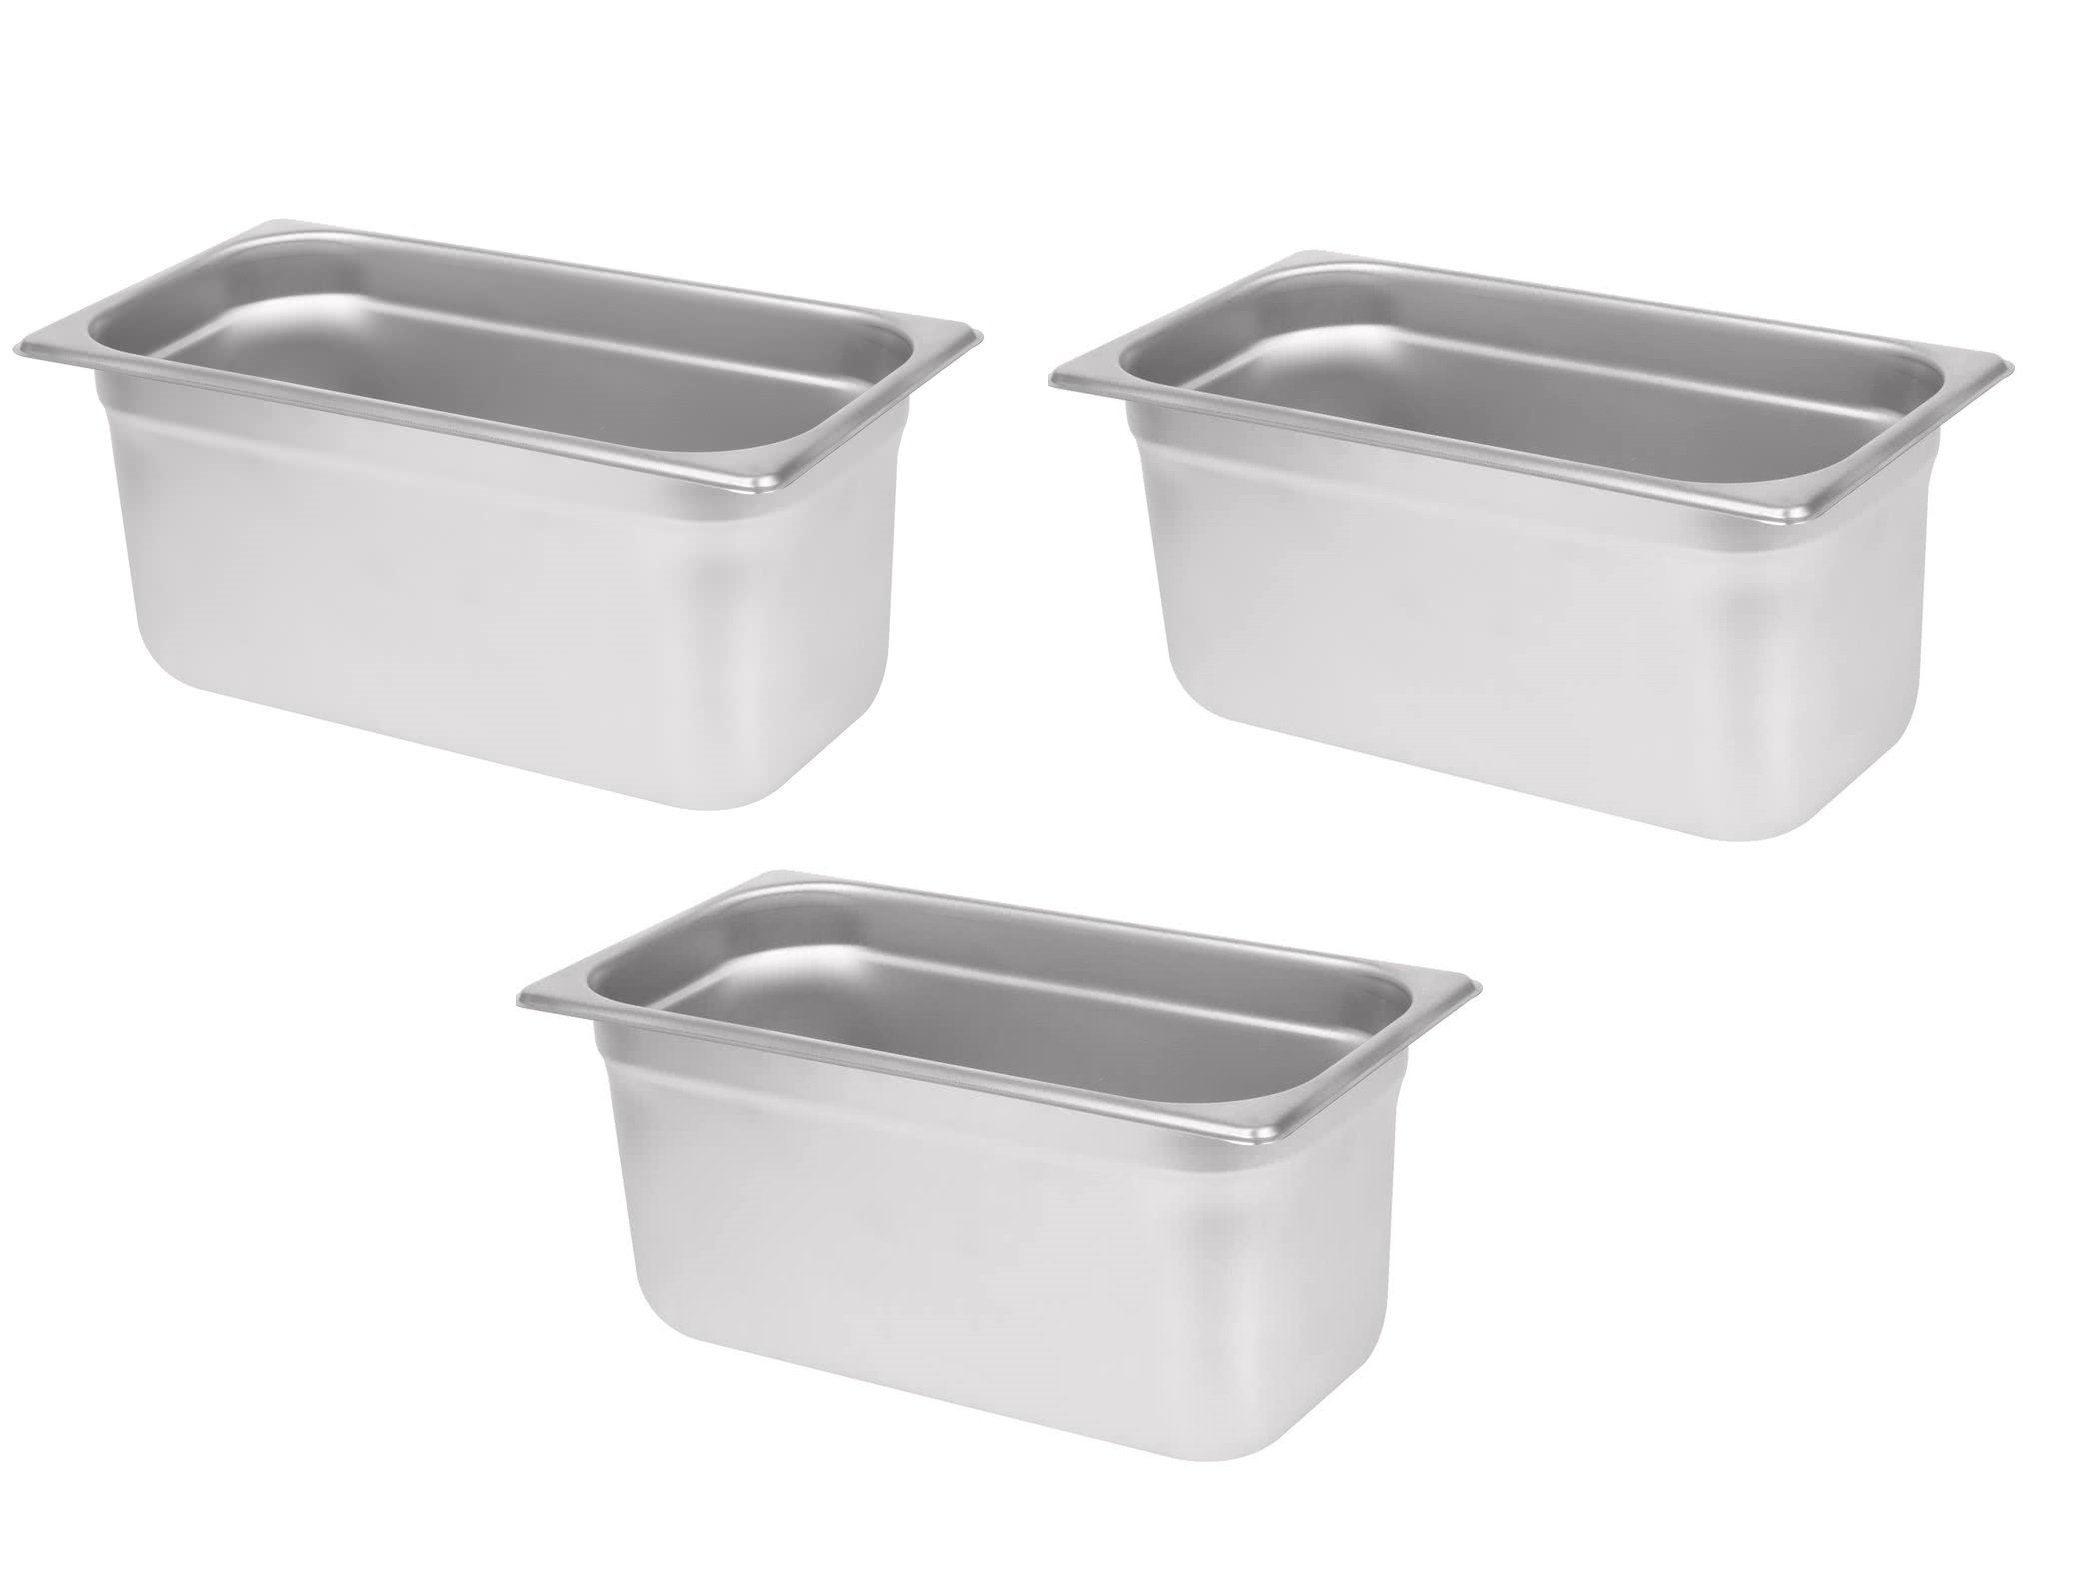 Premier Steam Pans 3 Pack 1/3 Size 6'' Deep Hotel Chafer Food Pan Stainless Steel Steam Anti-Jam Table $10 MFR Rebate by Premier Steam Pans (88136)